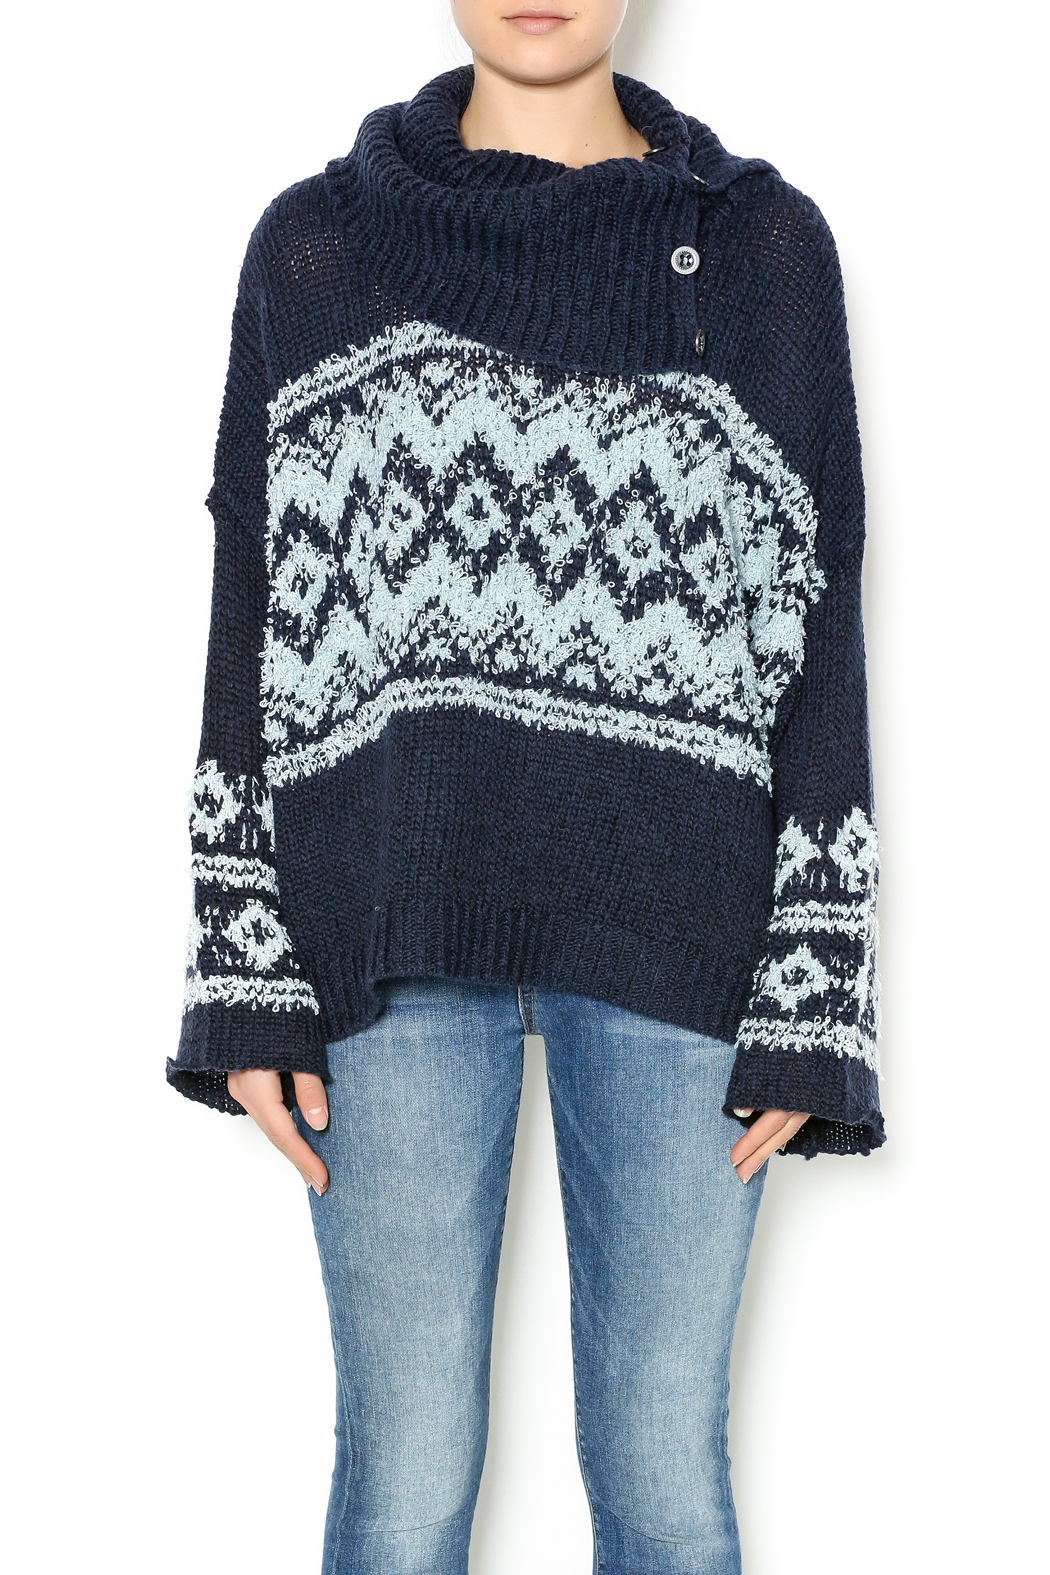 5c0913298 Free People Fairisle Split-Neck Sweater from New Hampshire by LR ...